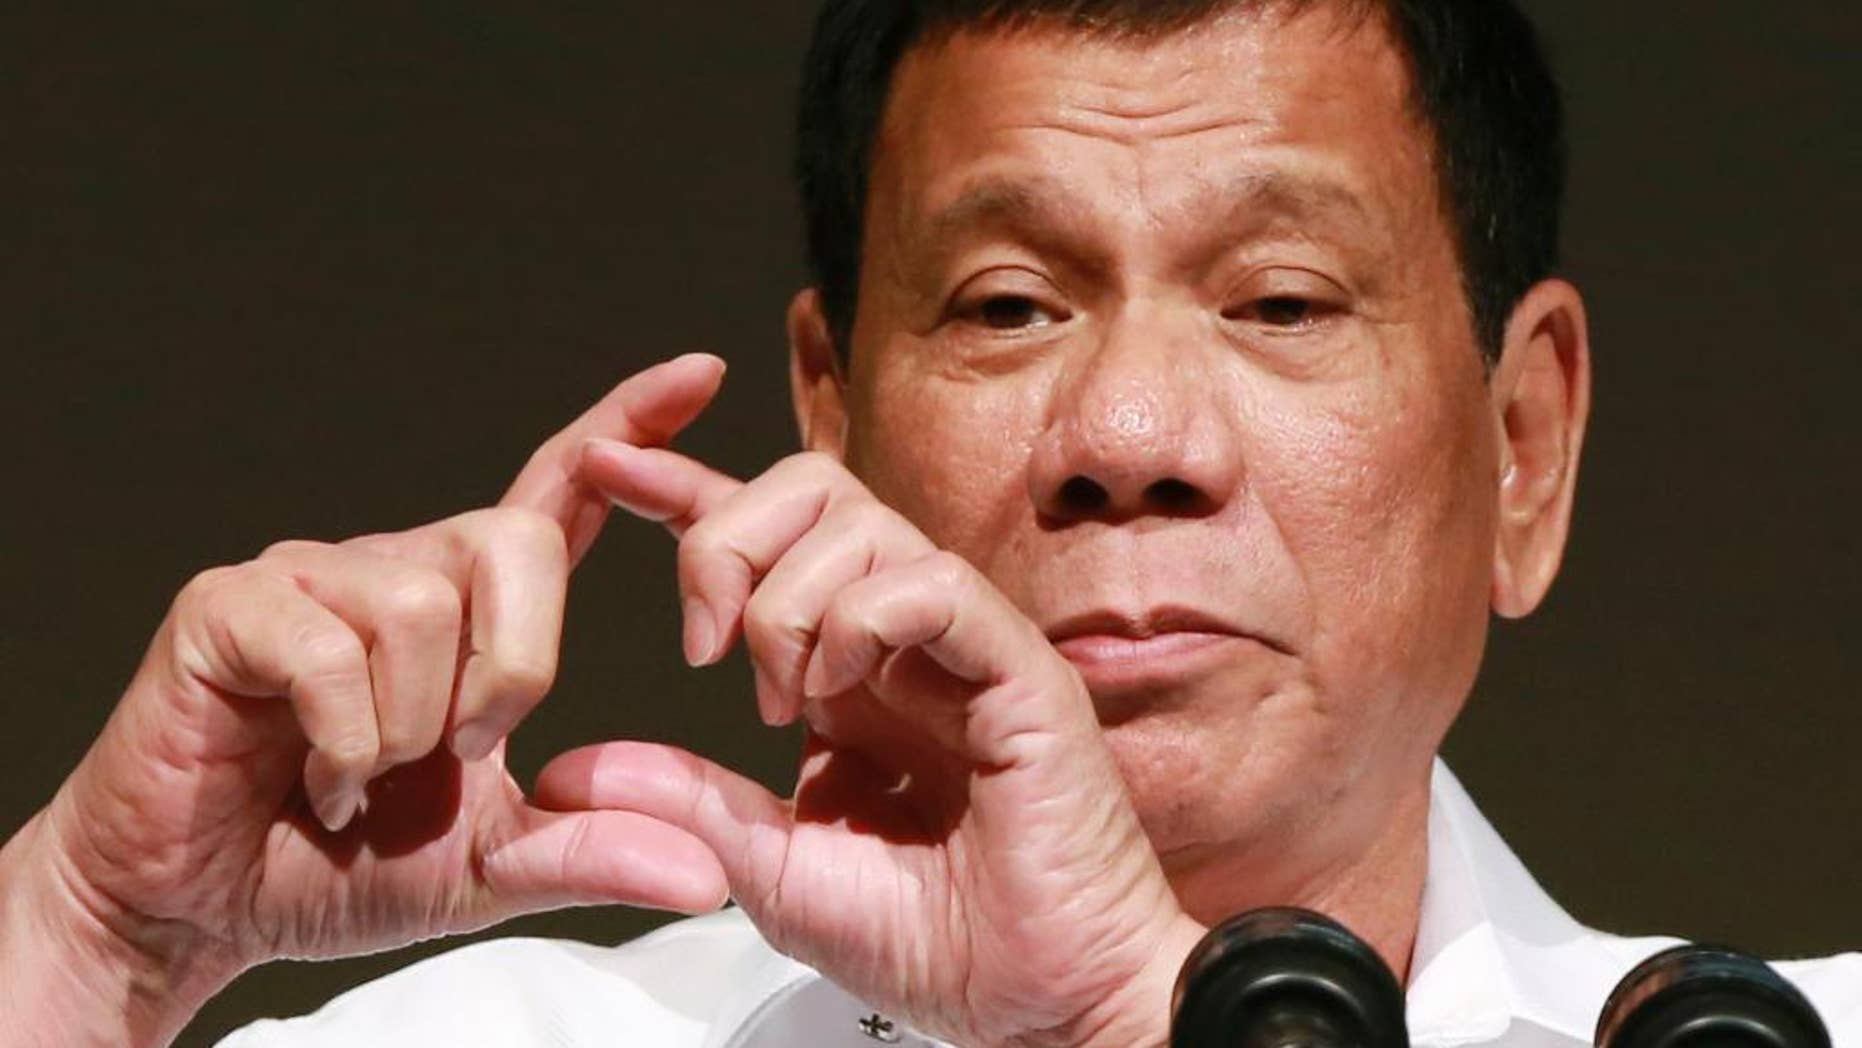 FILE - In this Oct. 26, 2016, file photo, Philippine President Rodrigo Duterte delivers a speech at the Philippine Economic Forum in Tokyo. Duterte, who has lashed out at U.S. President Barack Obama for criticizing his deadly crackdown on drugs, said his ties with the United States are likely to improve under Donald Trump, but that he is also excited to meet Russian leader Vladimir Putin at an upcoming Asia-Pacific summit. Duterte made upbeat remarks about both the president-elect and Putin at a news conference late Tuesday, Nov. 15, 2016 in Manila.  (AP Photo/Eugene Hoshiko, File)